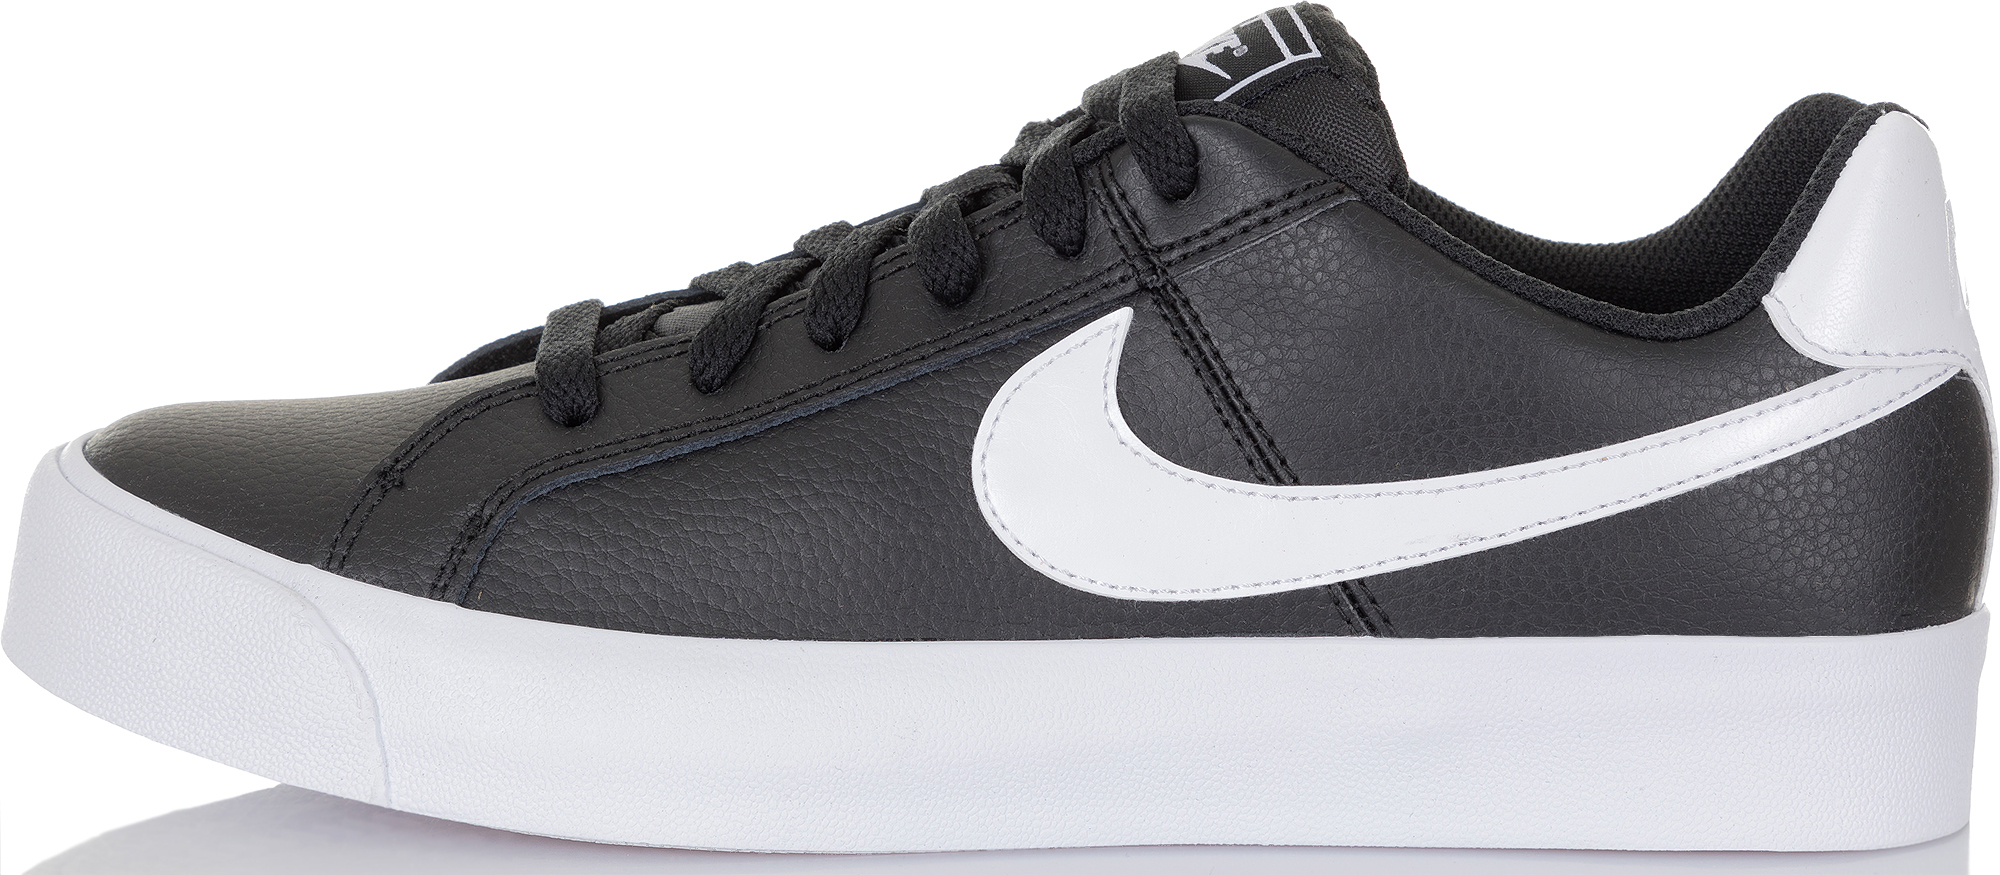 цены Nike Кеды женские Nike Court Royale AC, размер 35,5